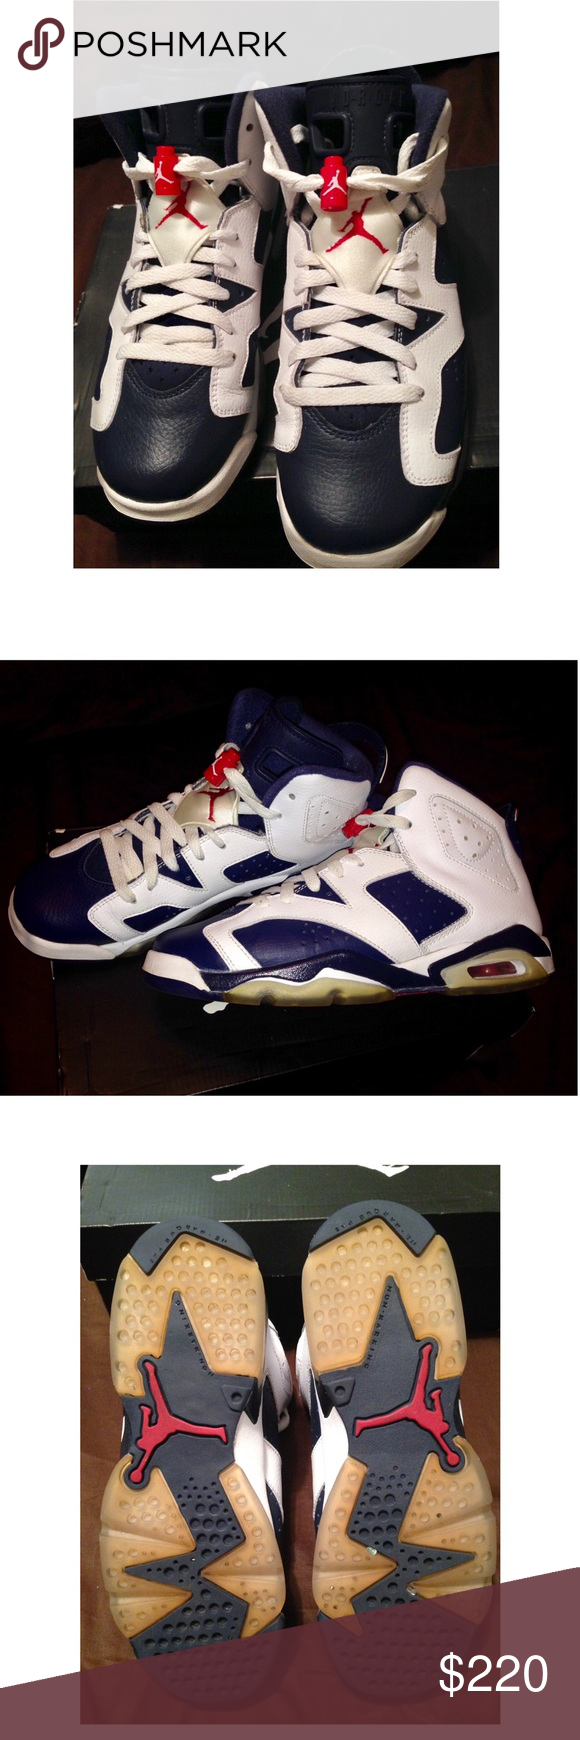 meet 30a61 44d1d Air Jordans 2012 Olympic Retro 6 6 Y women 8 Authentic comes with original  box and insoles. Nike Air Jordan Olympic Retro 6. Size 6 youth but will  also fit ...